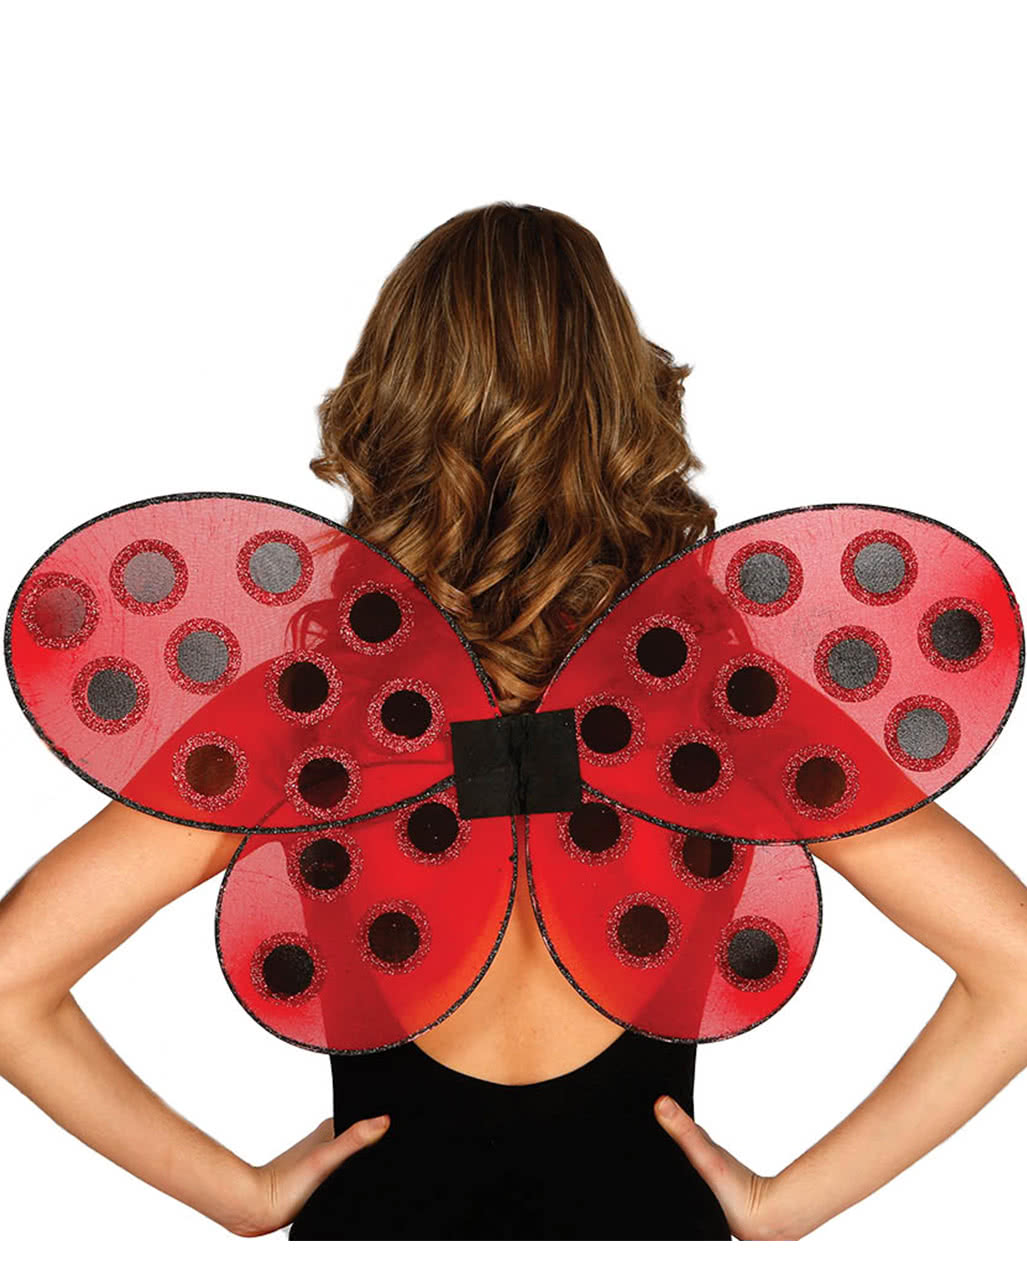 wings for adults Ladybug